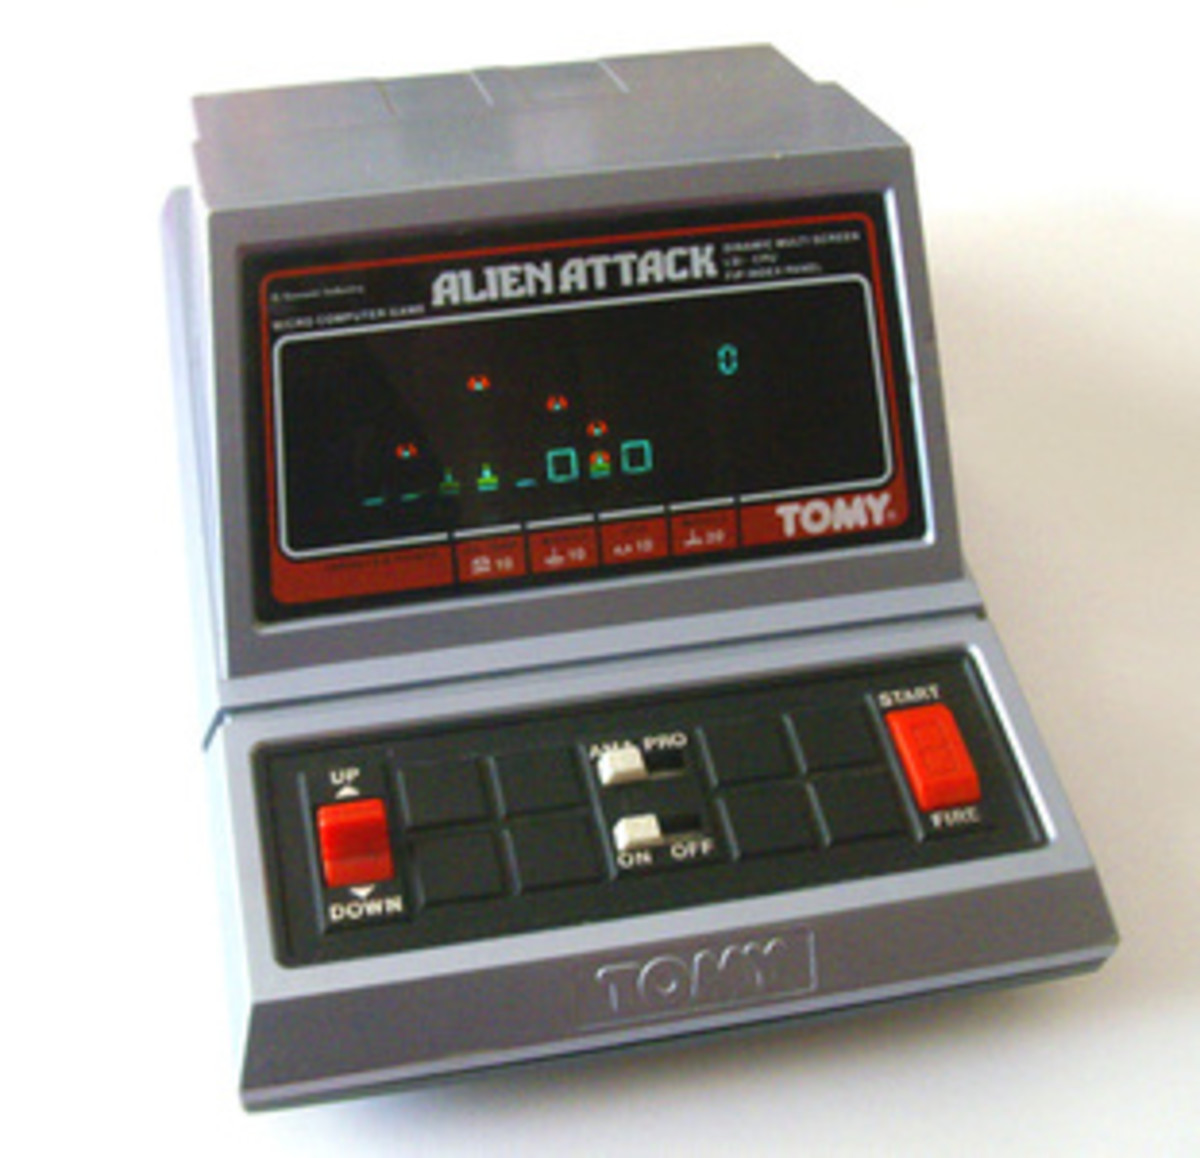 TOMY Alien Attack was the same game as Astro Blaster only housed in a different unit